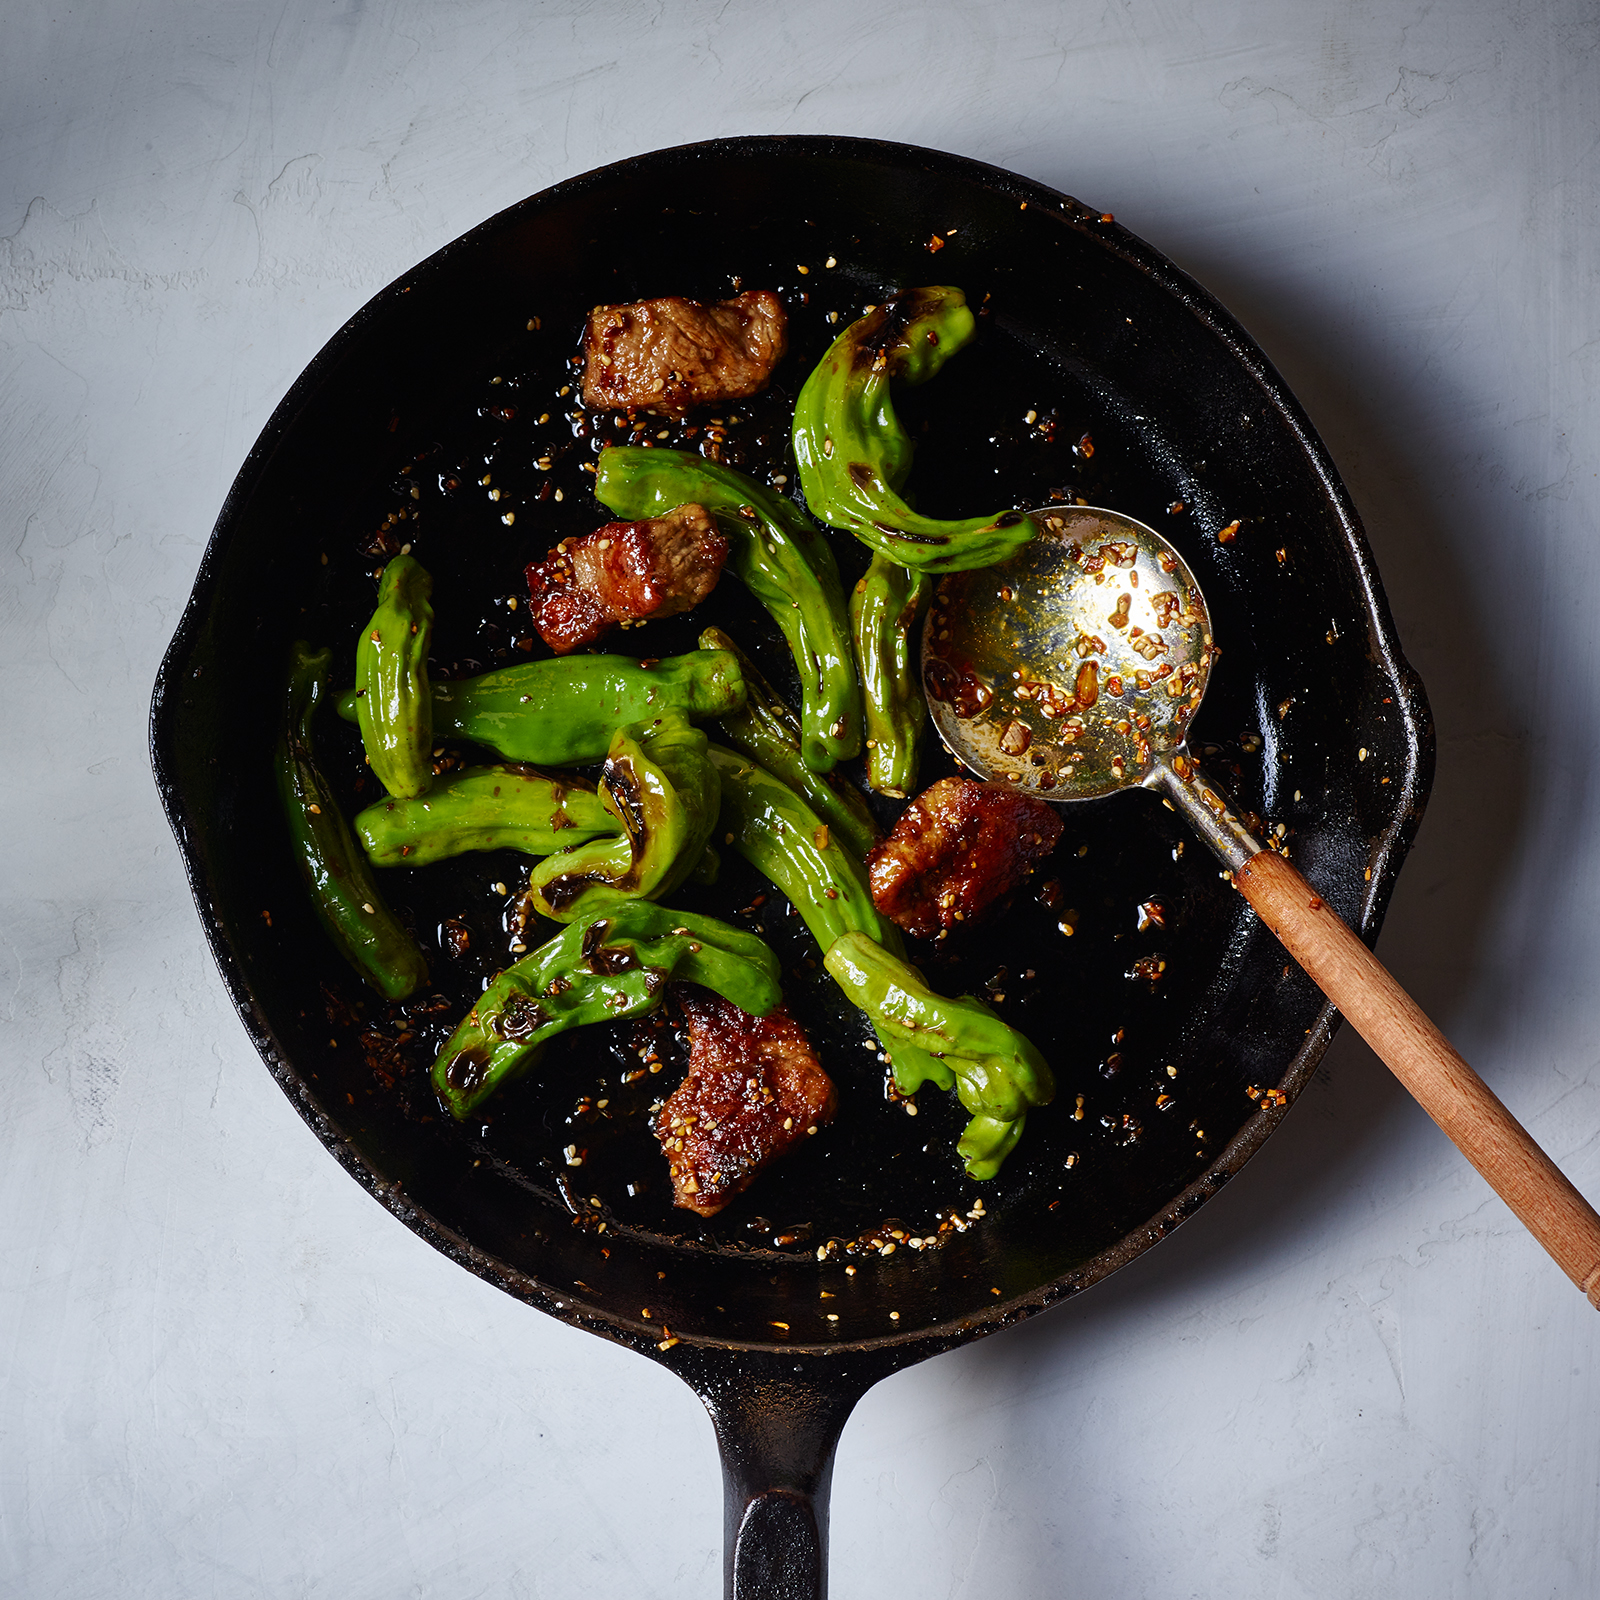 Wok-Seared Steak Mah-Jongg with Shishito Peppers